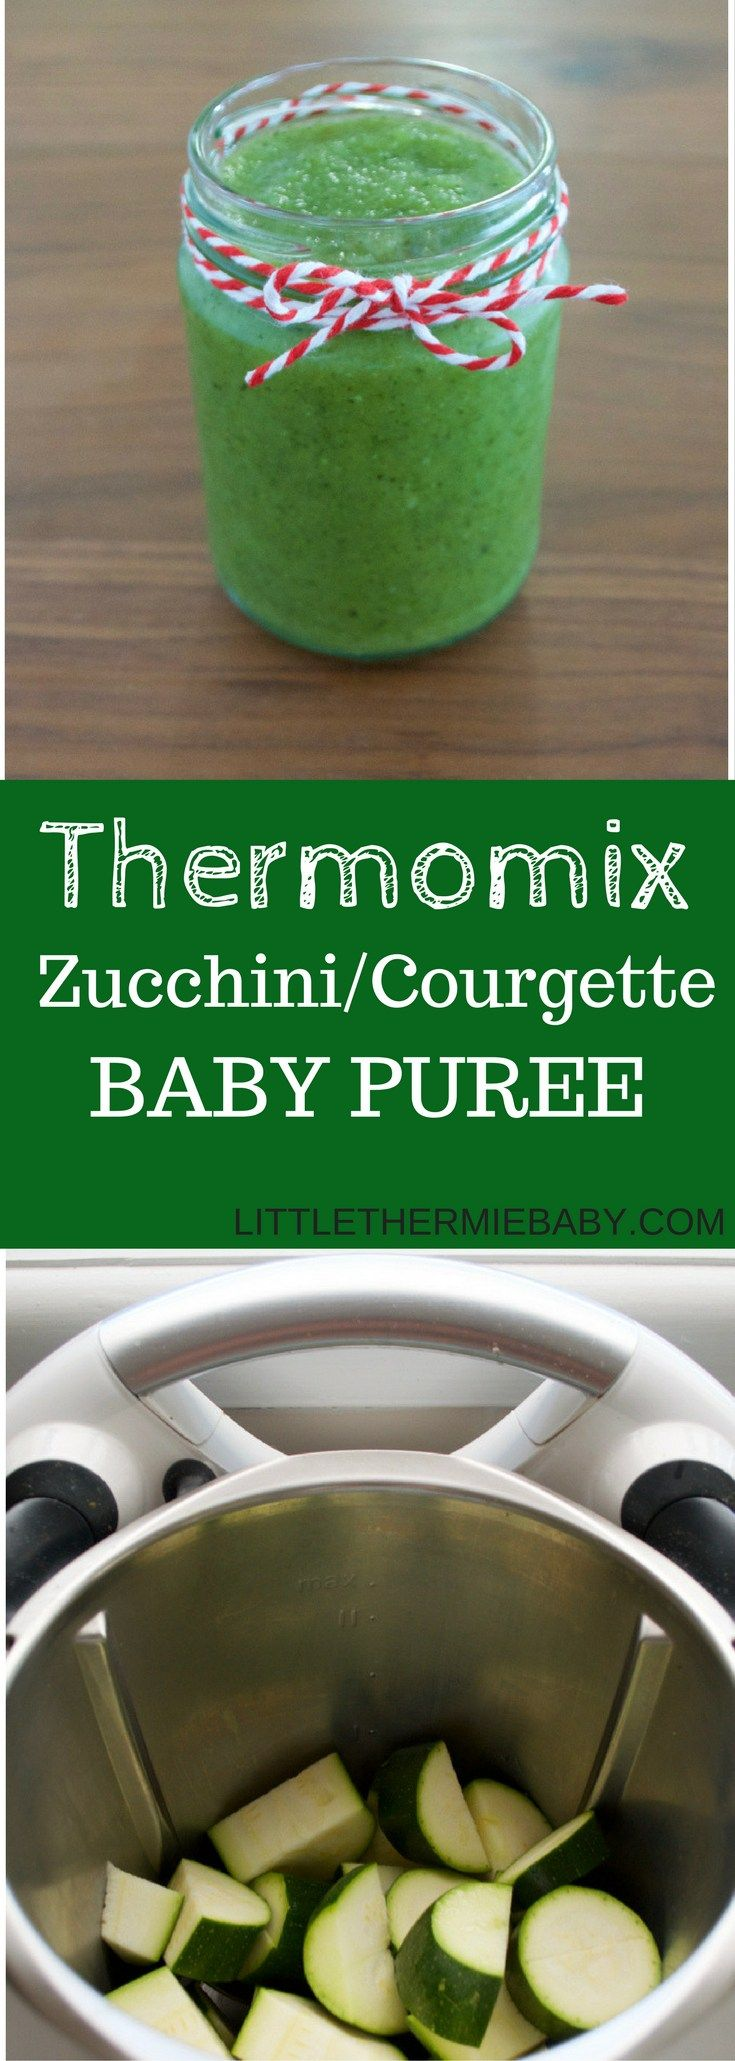 THERMOMIX ZUCCHINI / COURGETTE BABY PUREE Get your greens in! This is a simple, smooth, healthy Thermomix zucchini/courgette baby puree. In some countries it's known as a zucchini and in others a courgette. Zucchini / Courgette has a lovely mild flavour and turns out silky smooth when pureed. And so quick in your Thermomix.